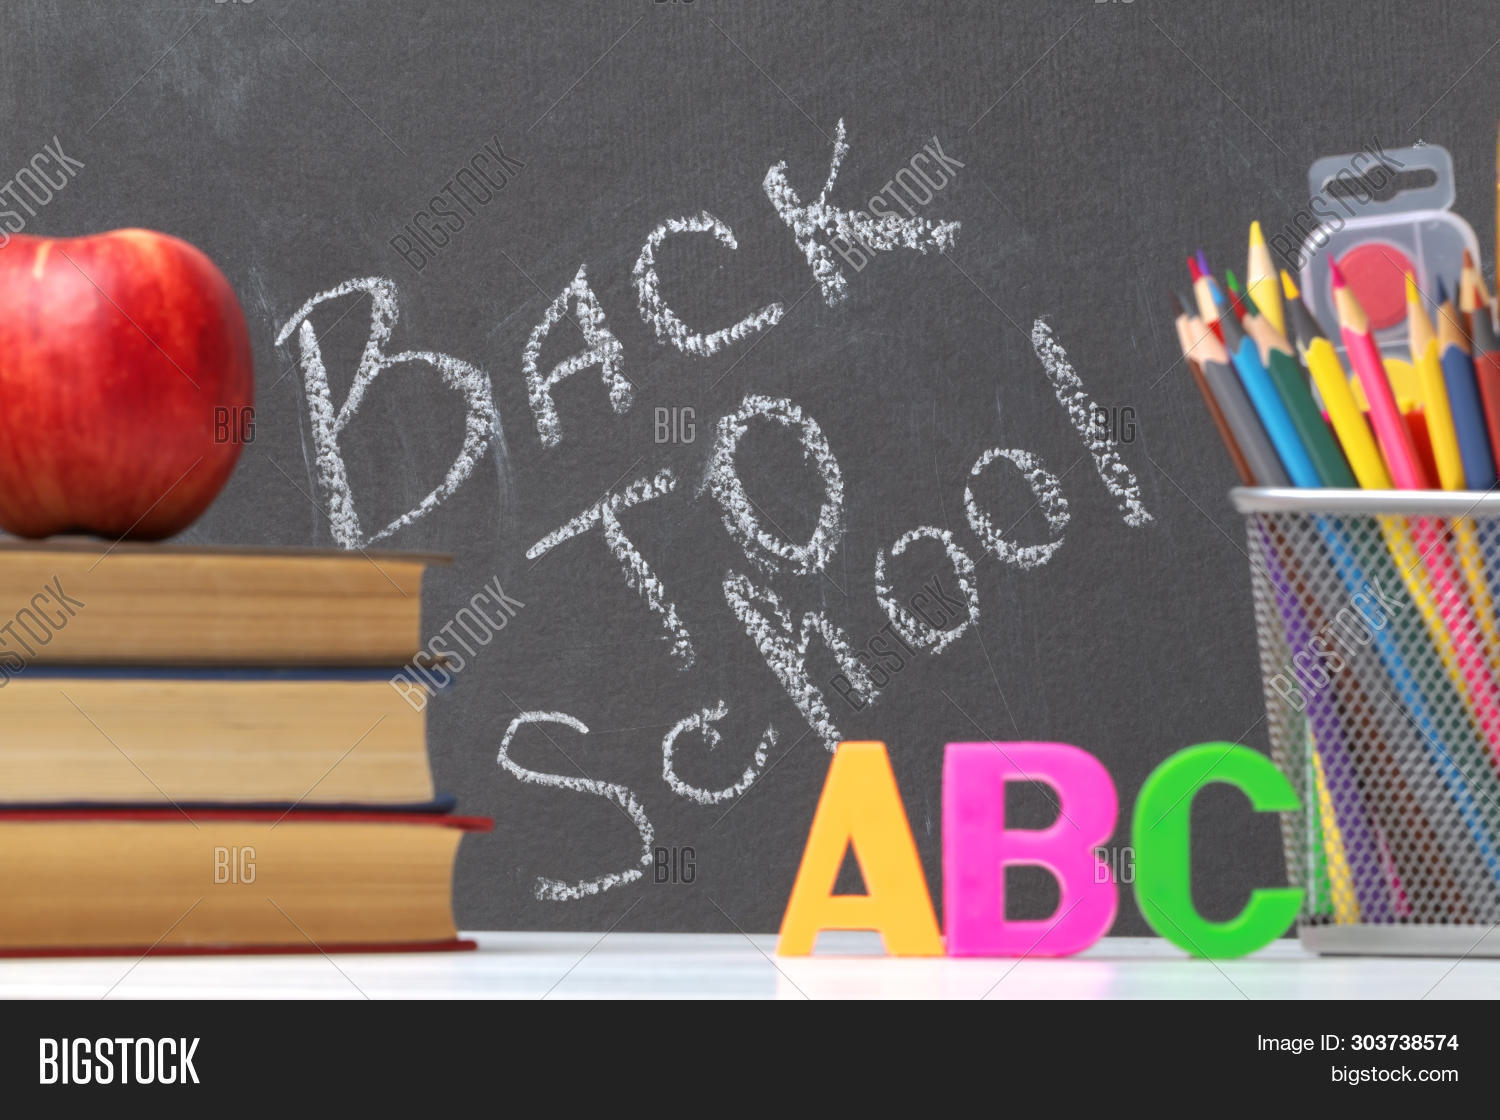 abc,accessories,alphabet,apple,auditorium,back,background,blackboard,board,book,brushes,chalk,chalkboard,class,classroom,college,color,composition,concept,desk,development,education,elementary,equipment,learn,letter,paints,pencils,red,school,september,set,stack,stationery,study,supplies,table,text,textbook,to,tools,wood